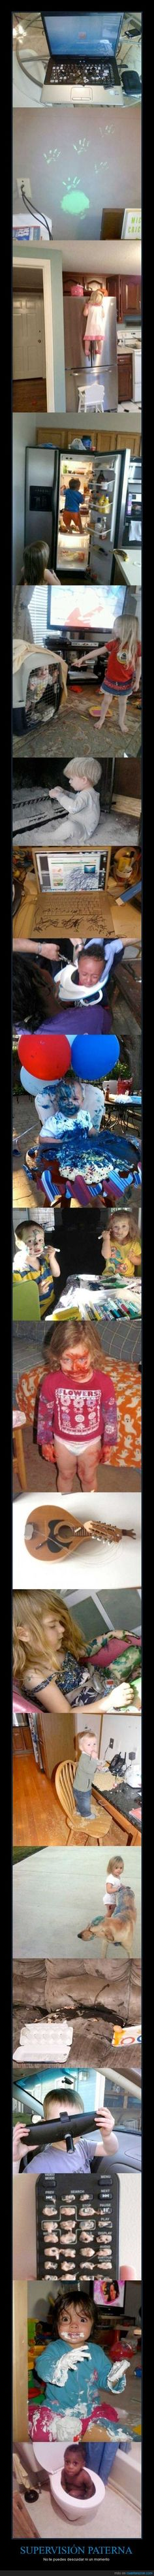 I look at these pictures and wonder how long where they unsupervised? Haha